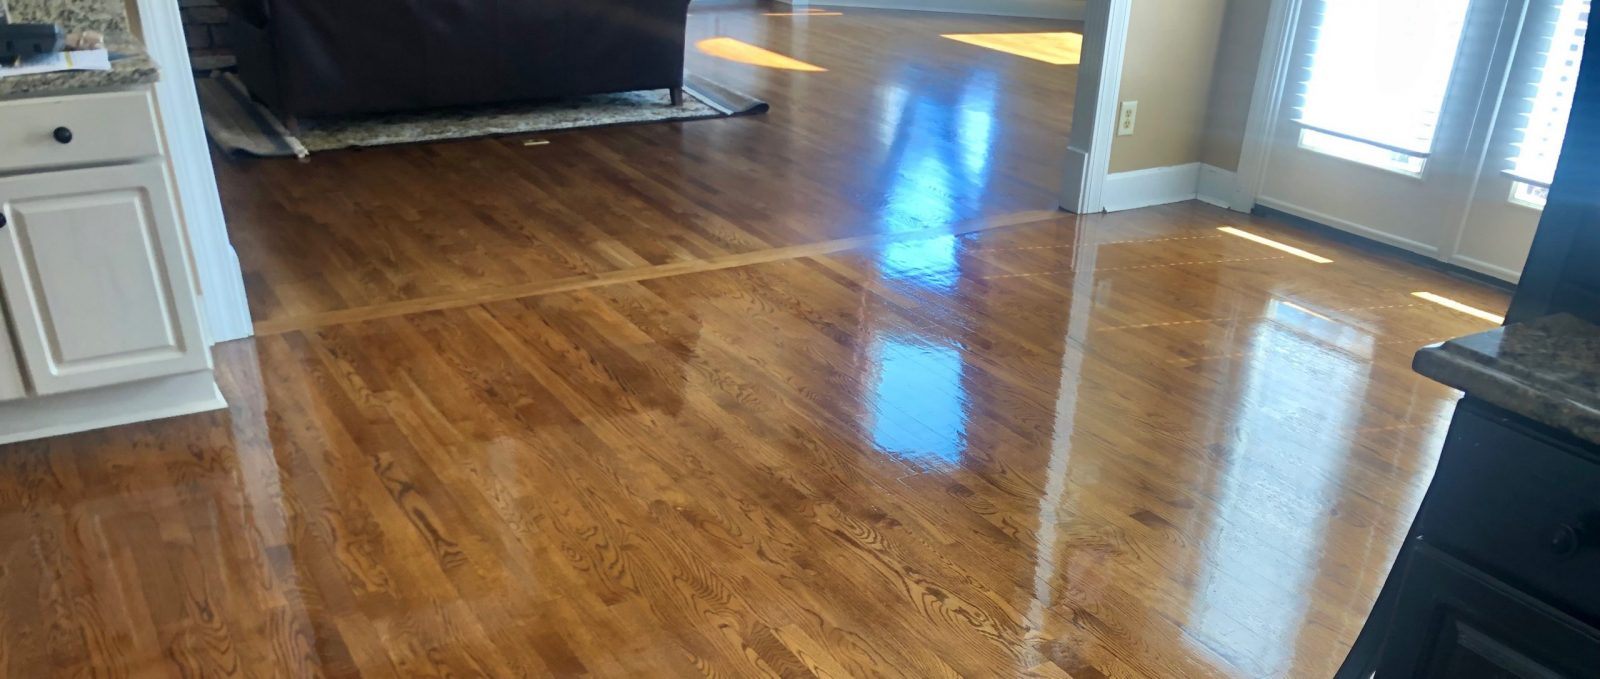 Professional Hardwood Floor Cleaning Anderson Ohio by Howards Cleaning Service